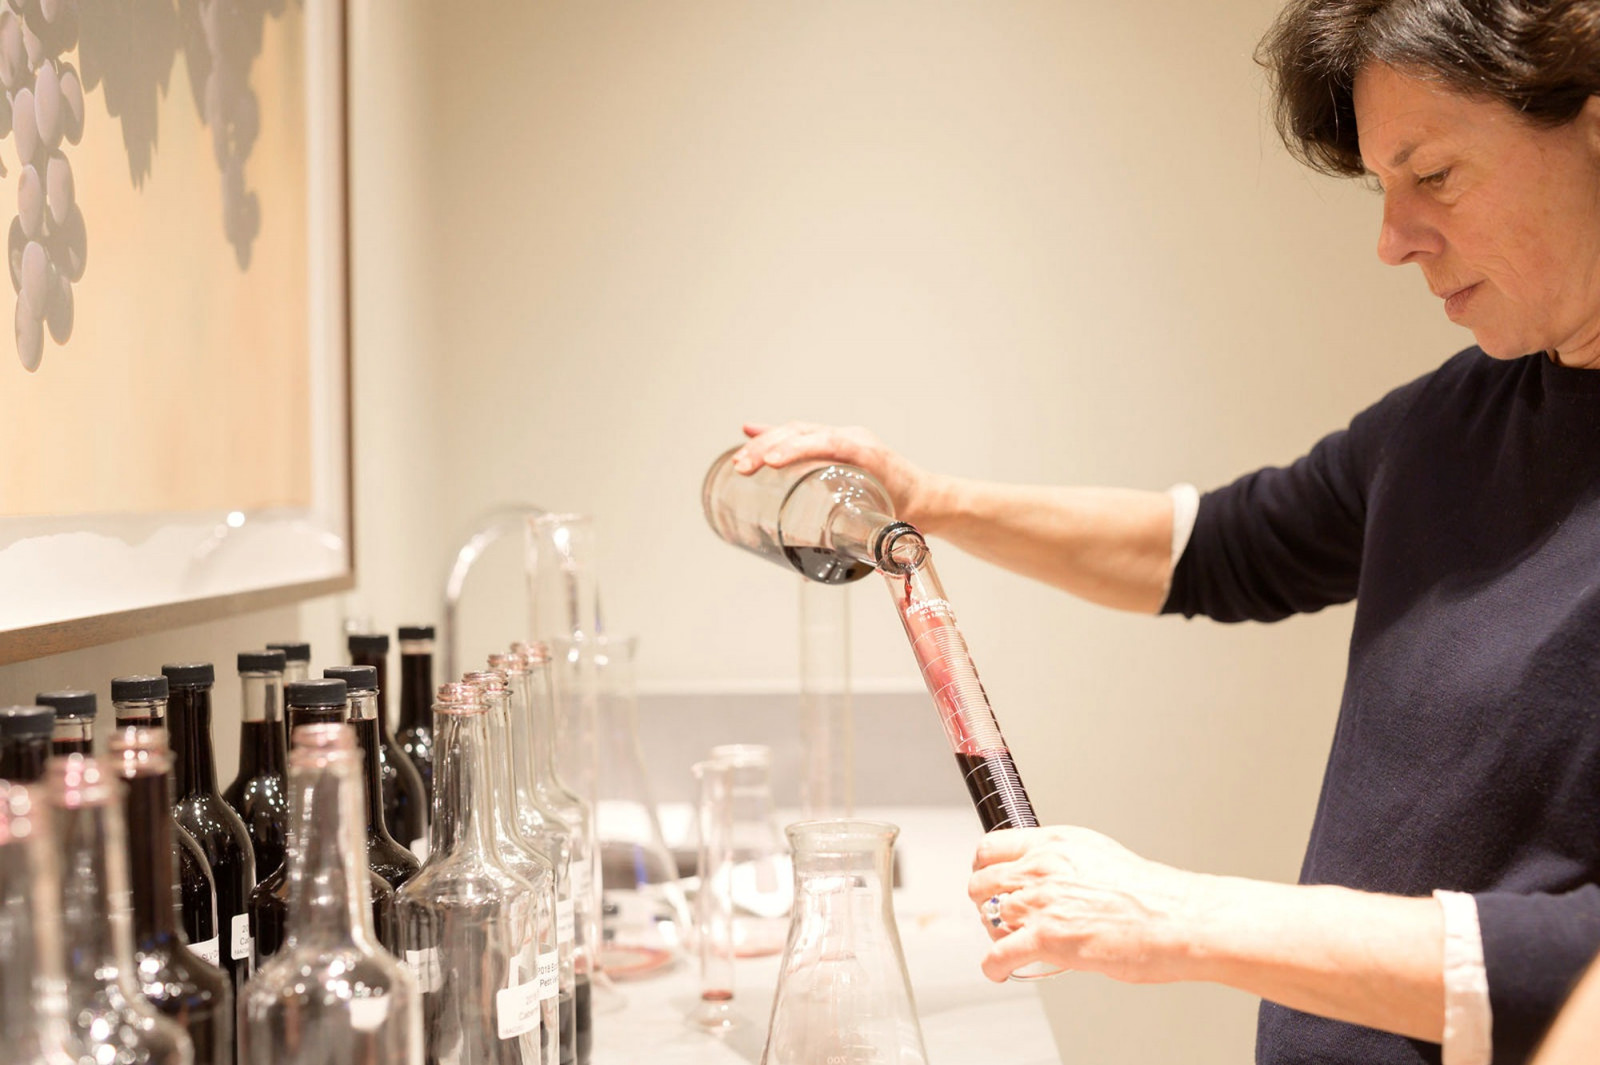 Françoise Peschon blending Cabernet Sauvignon during a blending session.